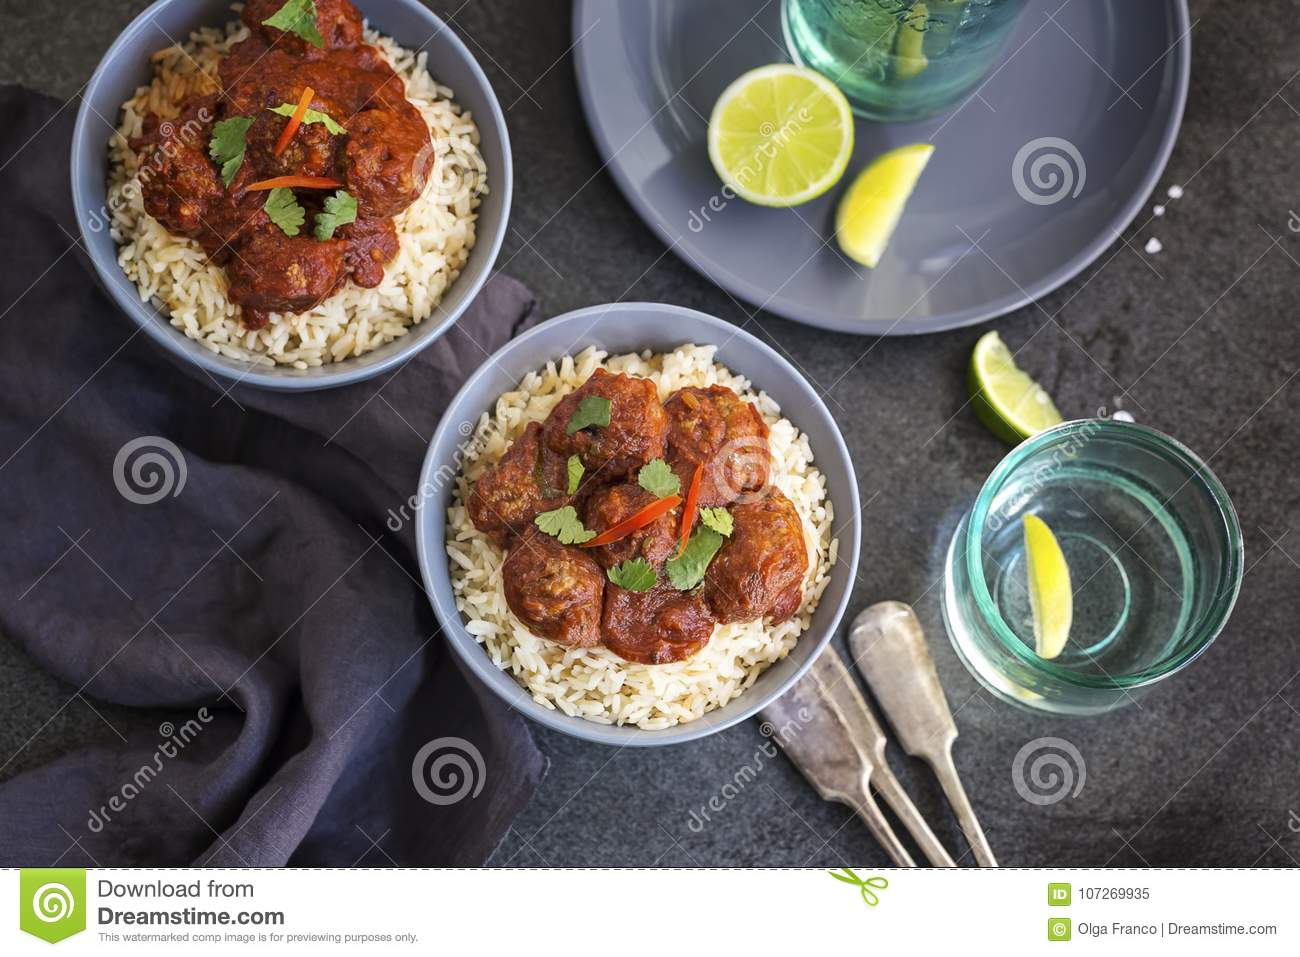 Meatballs in tomato sauce served on rice